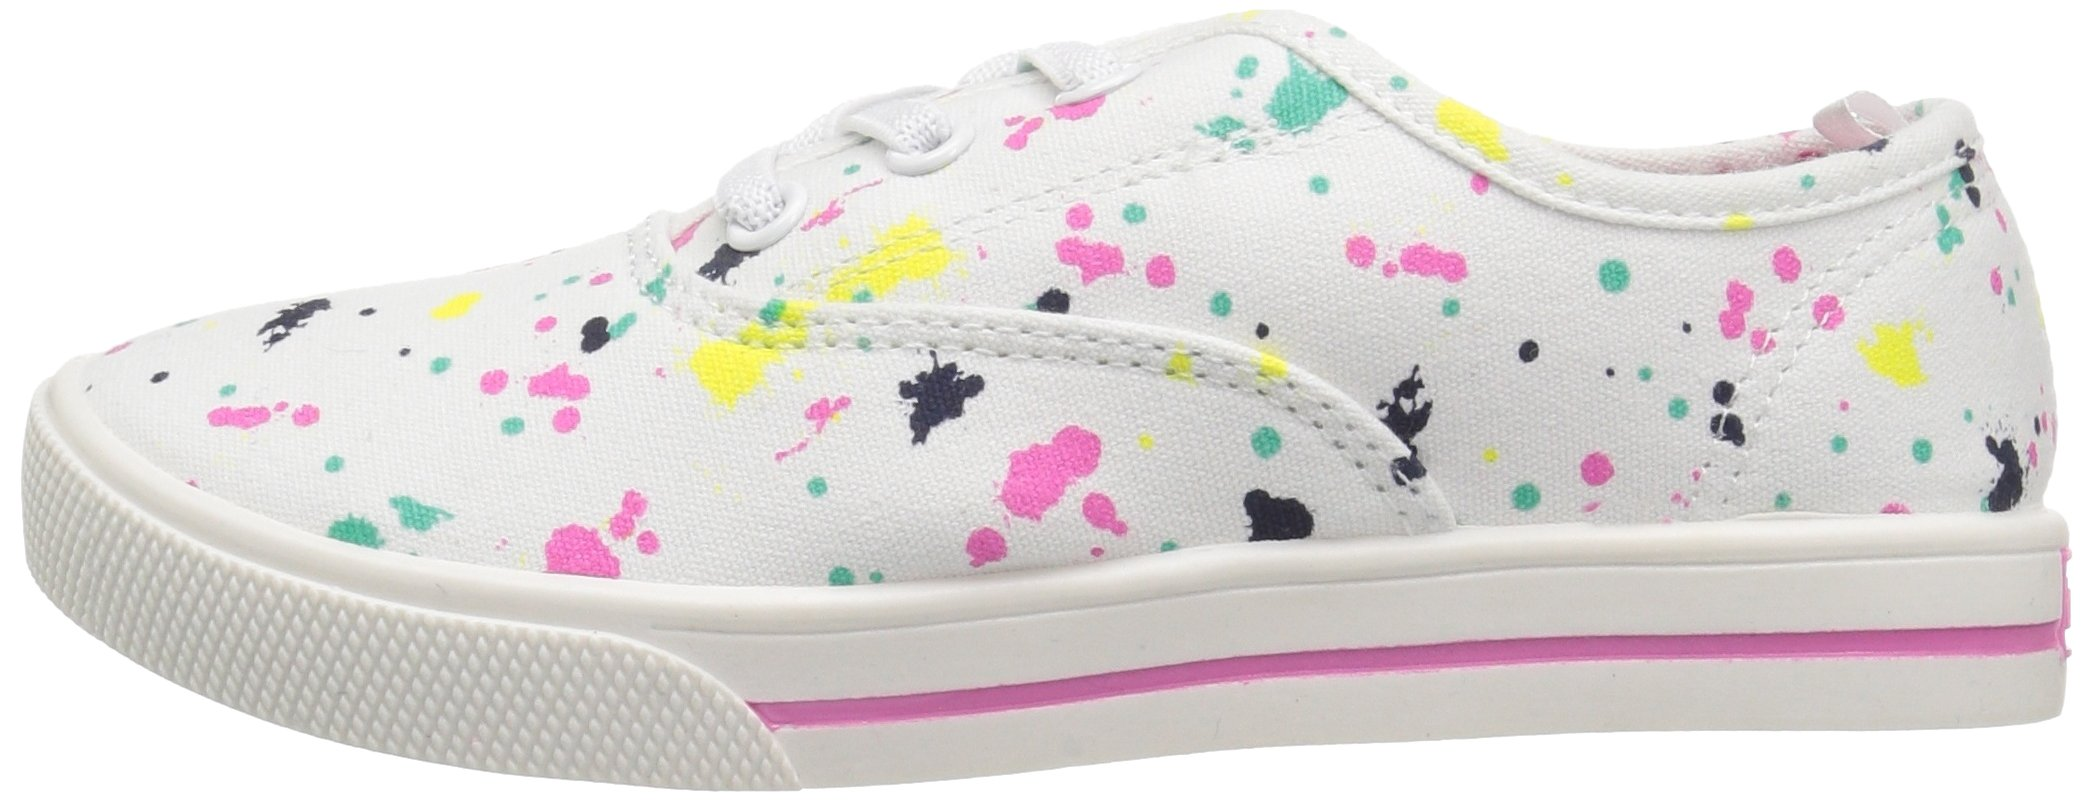 Carter's Piper Girl's Casual Sneaker, White/Print, 3 M US Little Kid by Carter's (Image #5)